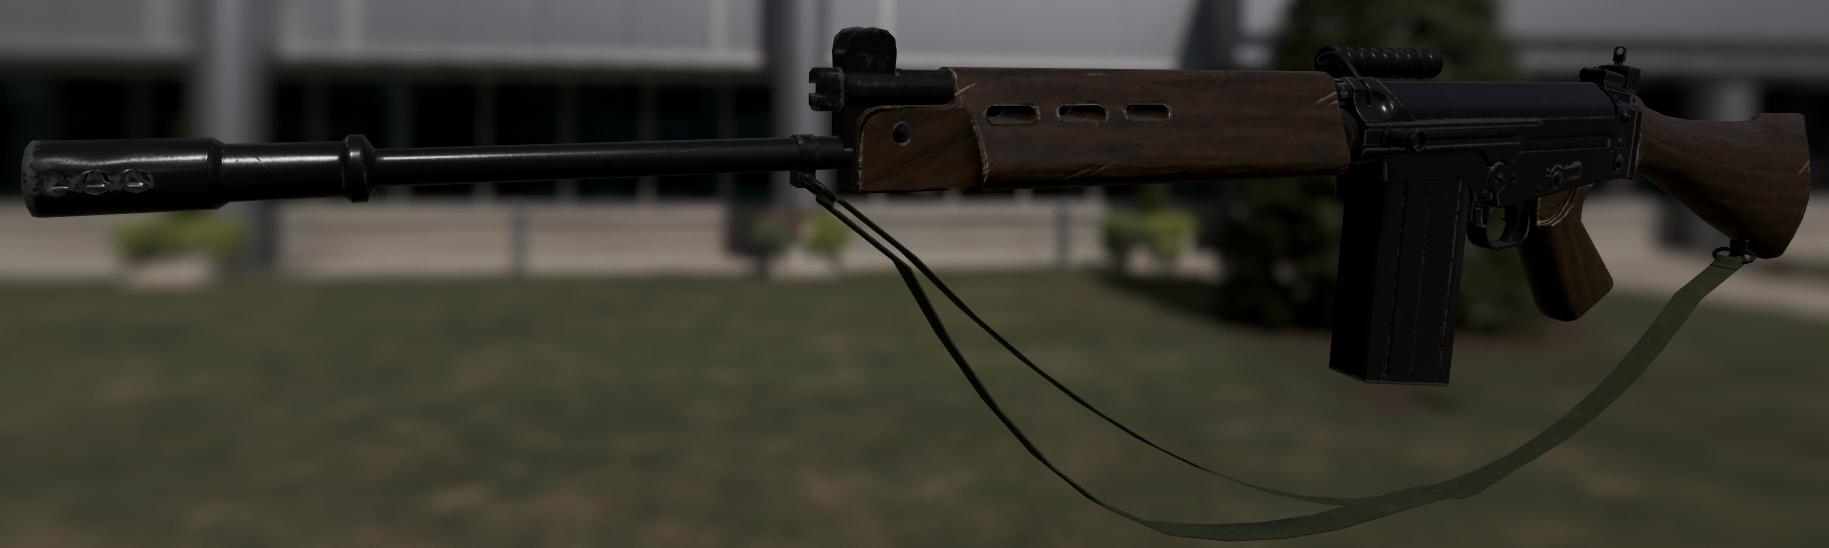 FN FAL using the same system with a new material, varnished wood